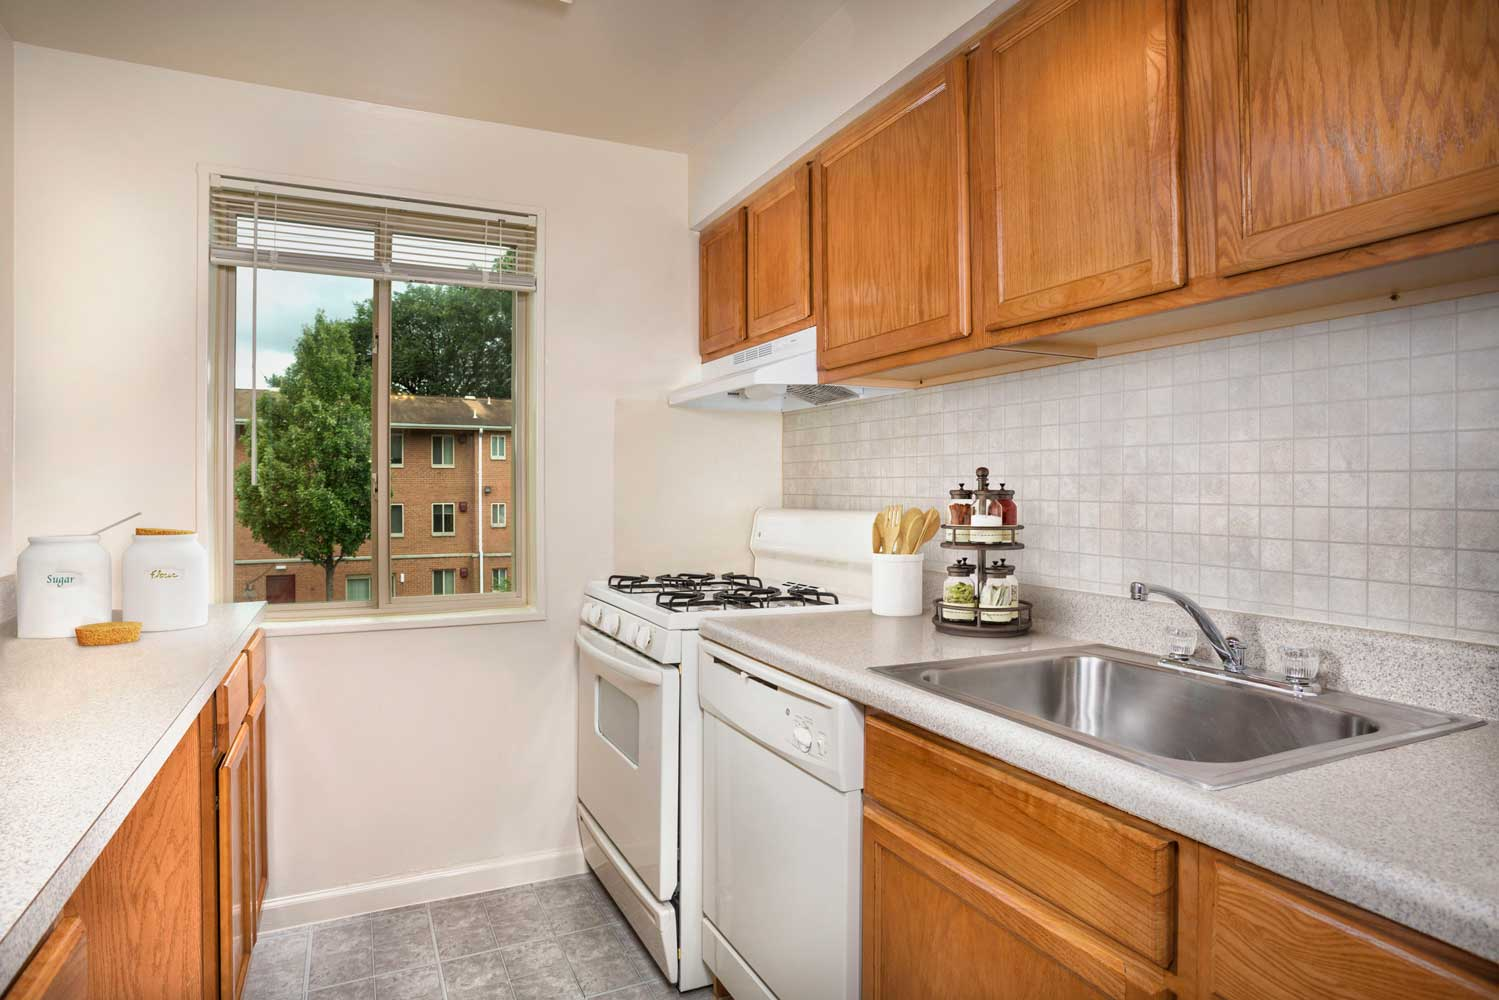 Kitchen with pantry at Barcroft View Apartments in Falls Church, VA